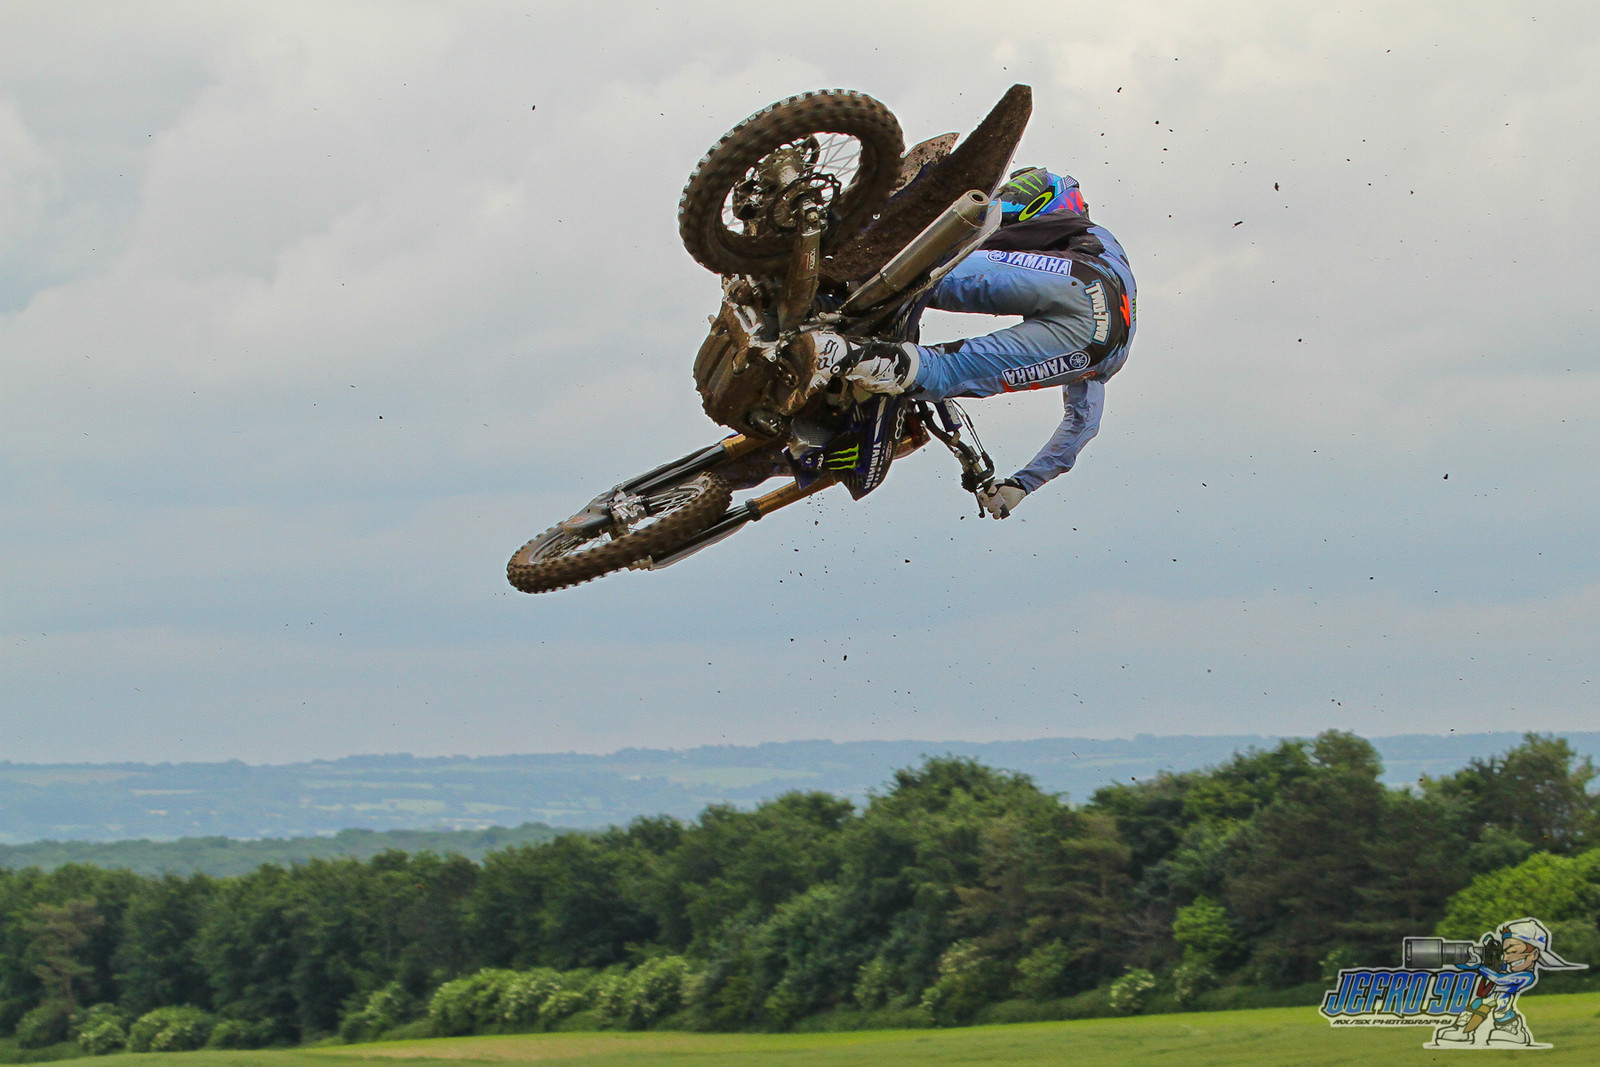 Chad Reed - Photo Gallery: MXGP of Great Britain - Motocross Pictures - Vital MX